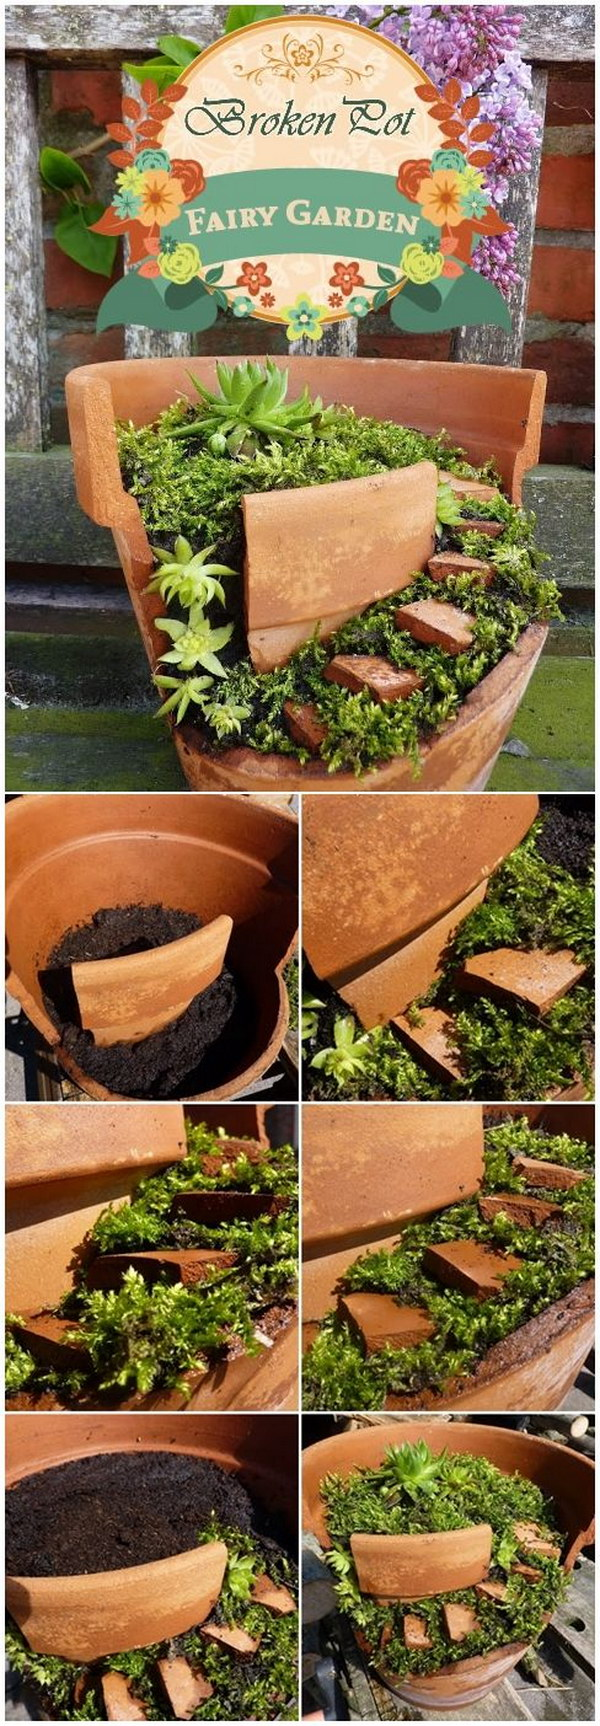 Artistic Diy Fairy Garden From Broken Clay Pot Diy Fairy Garden Ideas Tutorials 2017 Diy Fairy Gardens Cheap Miniature Fairy Gardens Diy garden Diy Fairy Gardens